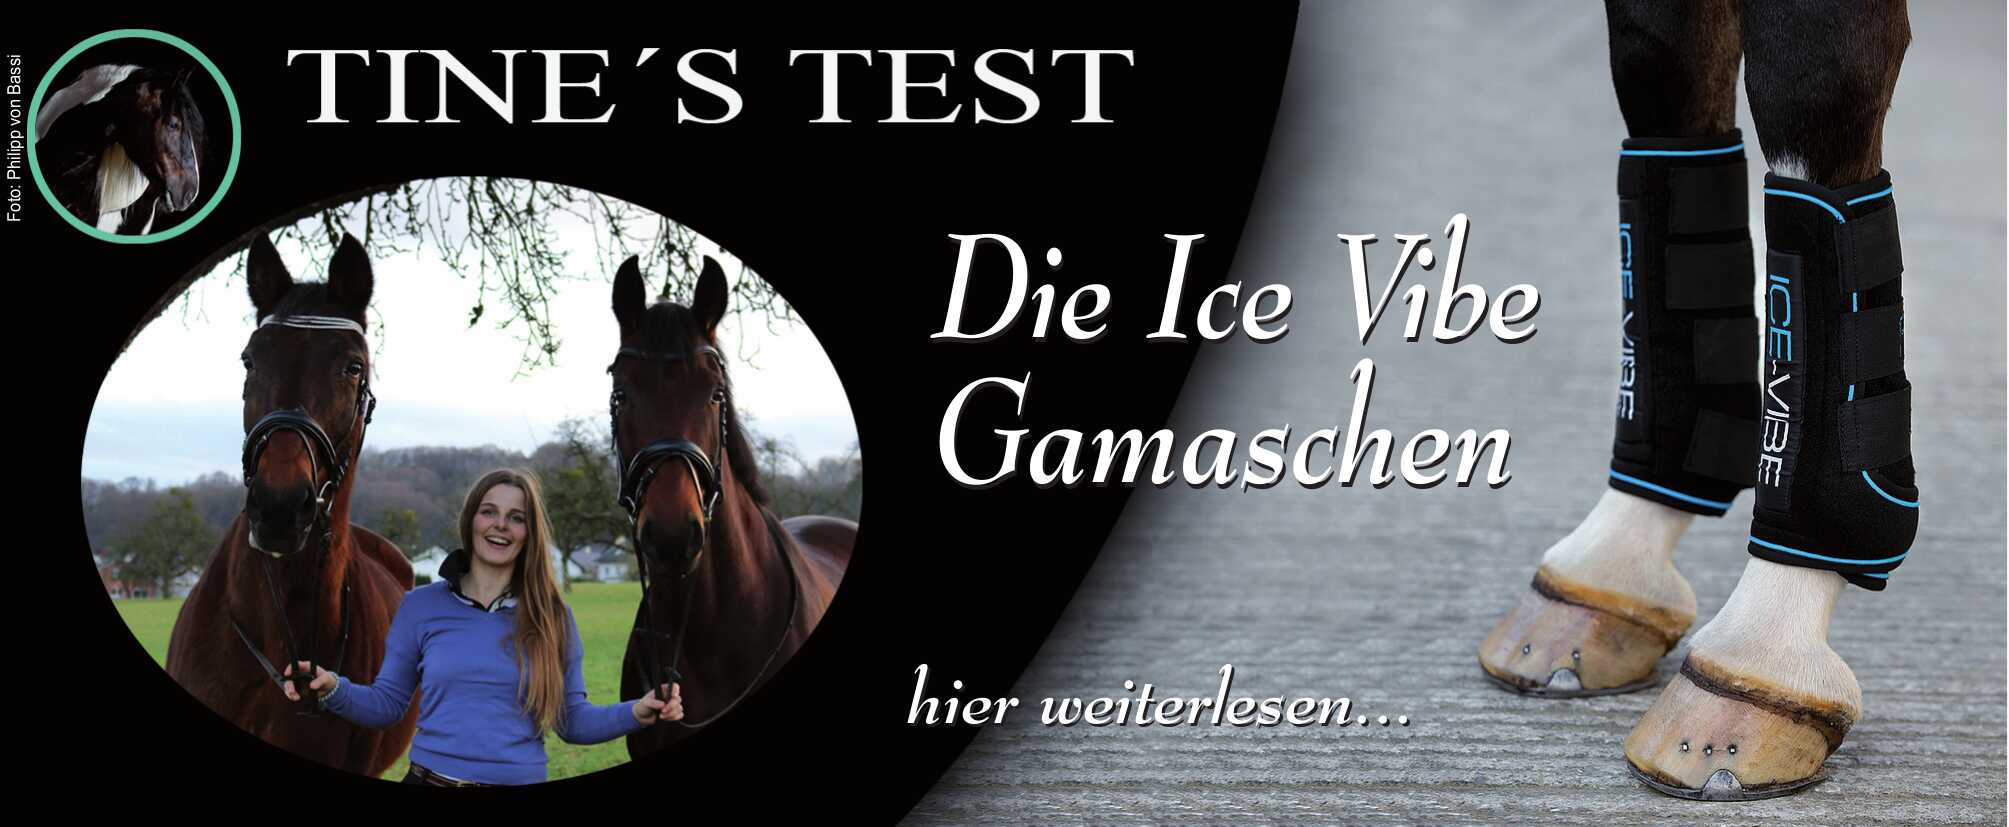 Tine's Test: Die Ice Vibes